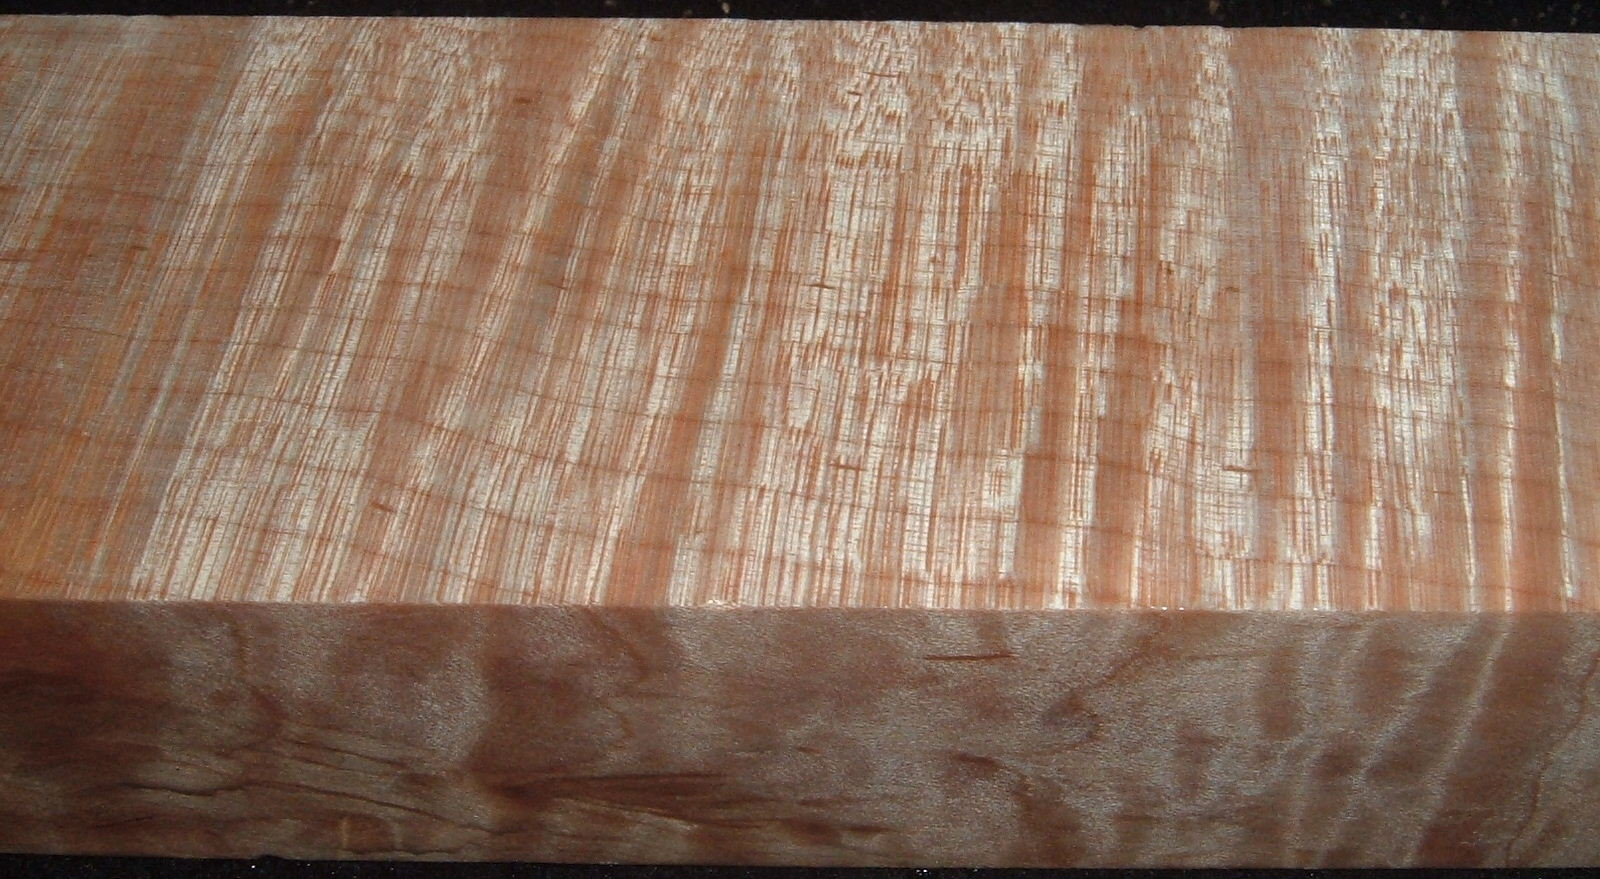 Z502, Curly Tiger Maple Dyed Stabilized, wood block scales/handle, Clear, 1-1/16x1-7/8x5-7/8